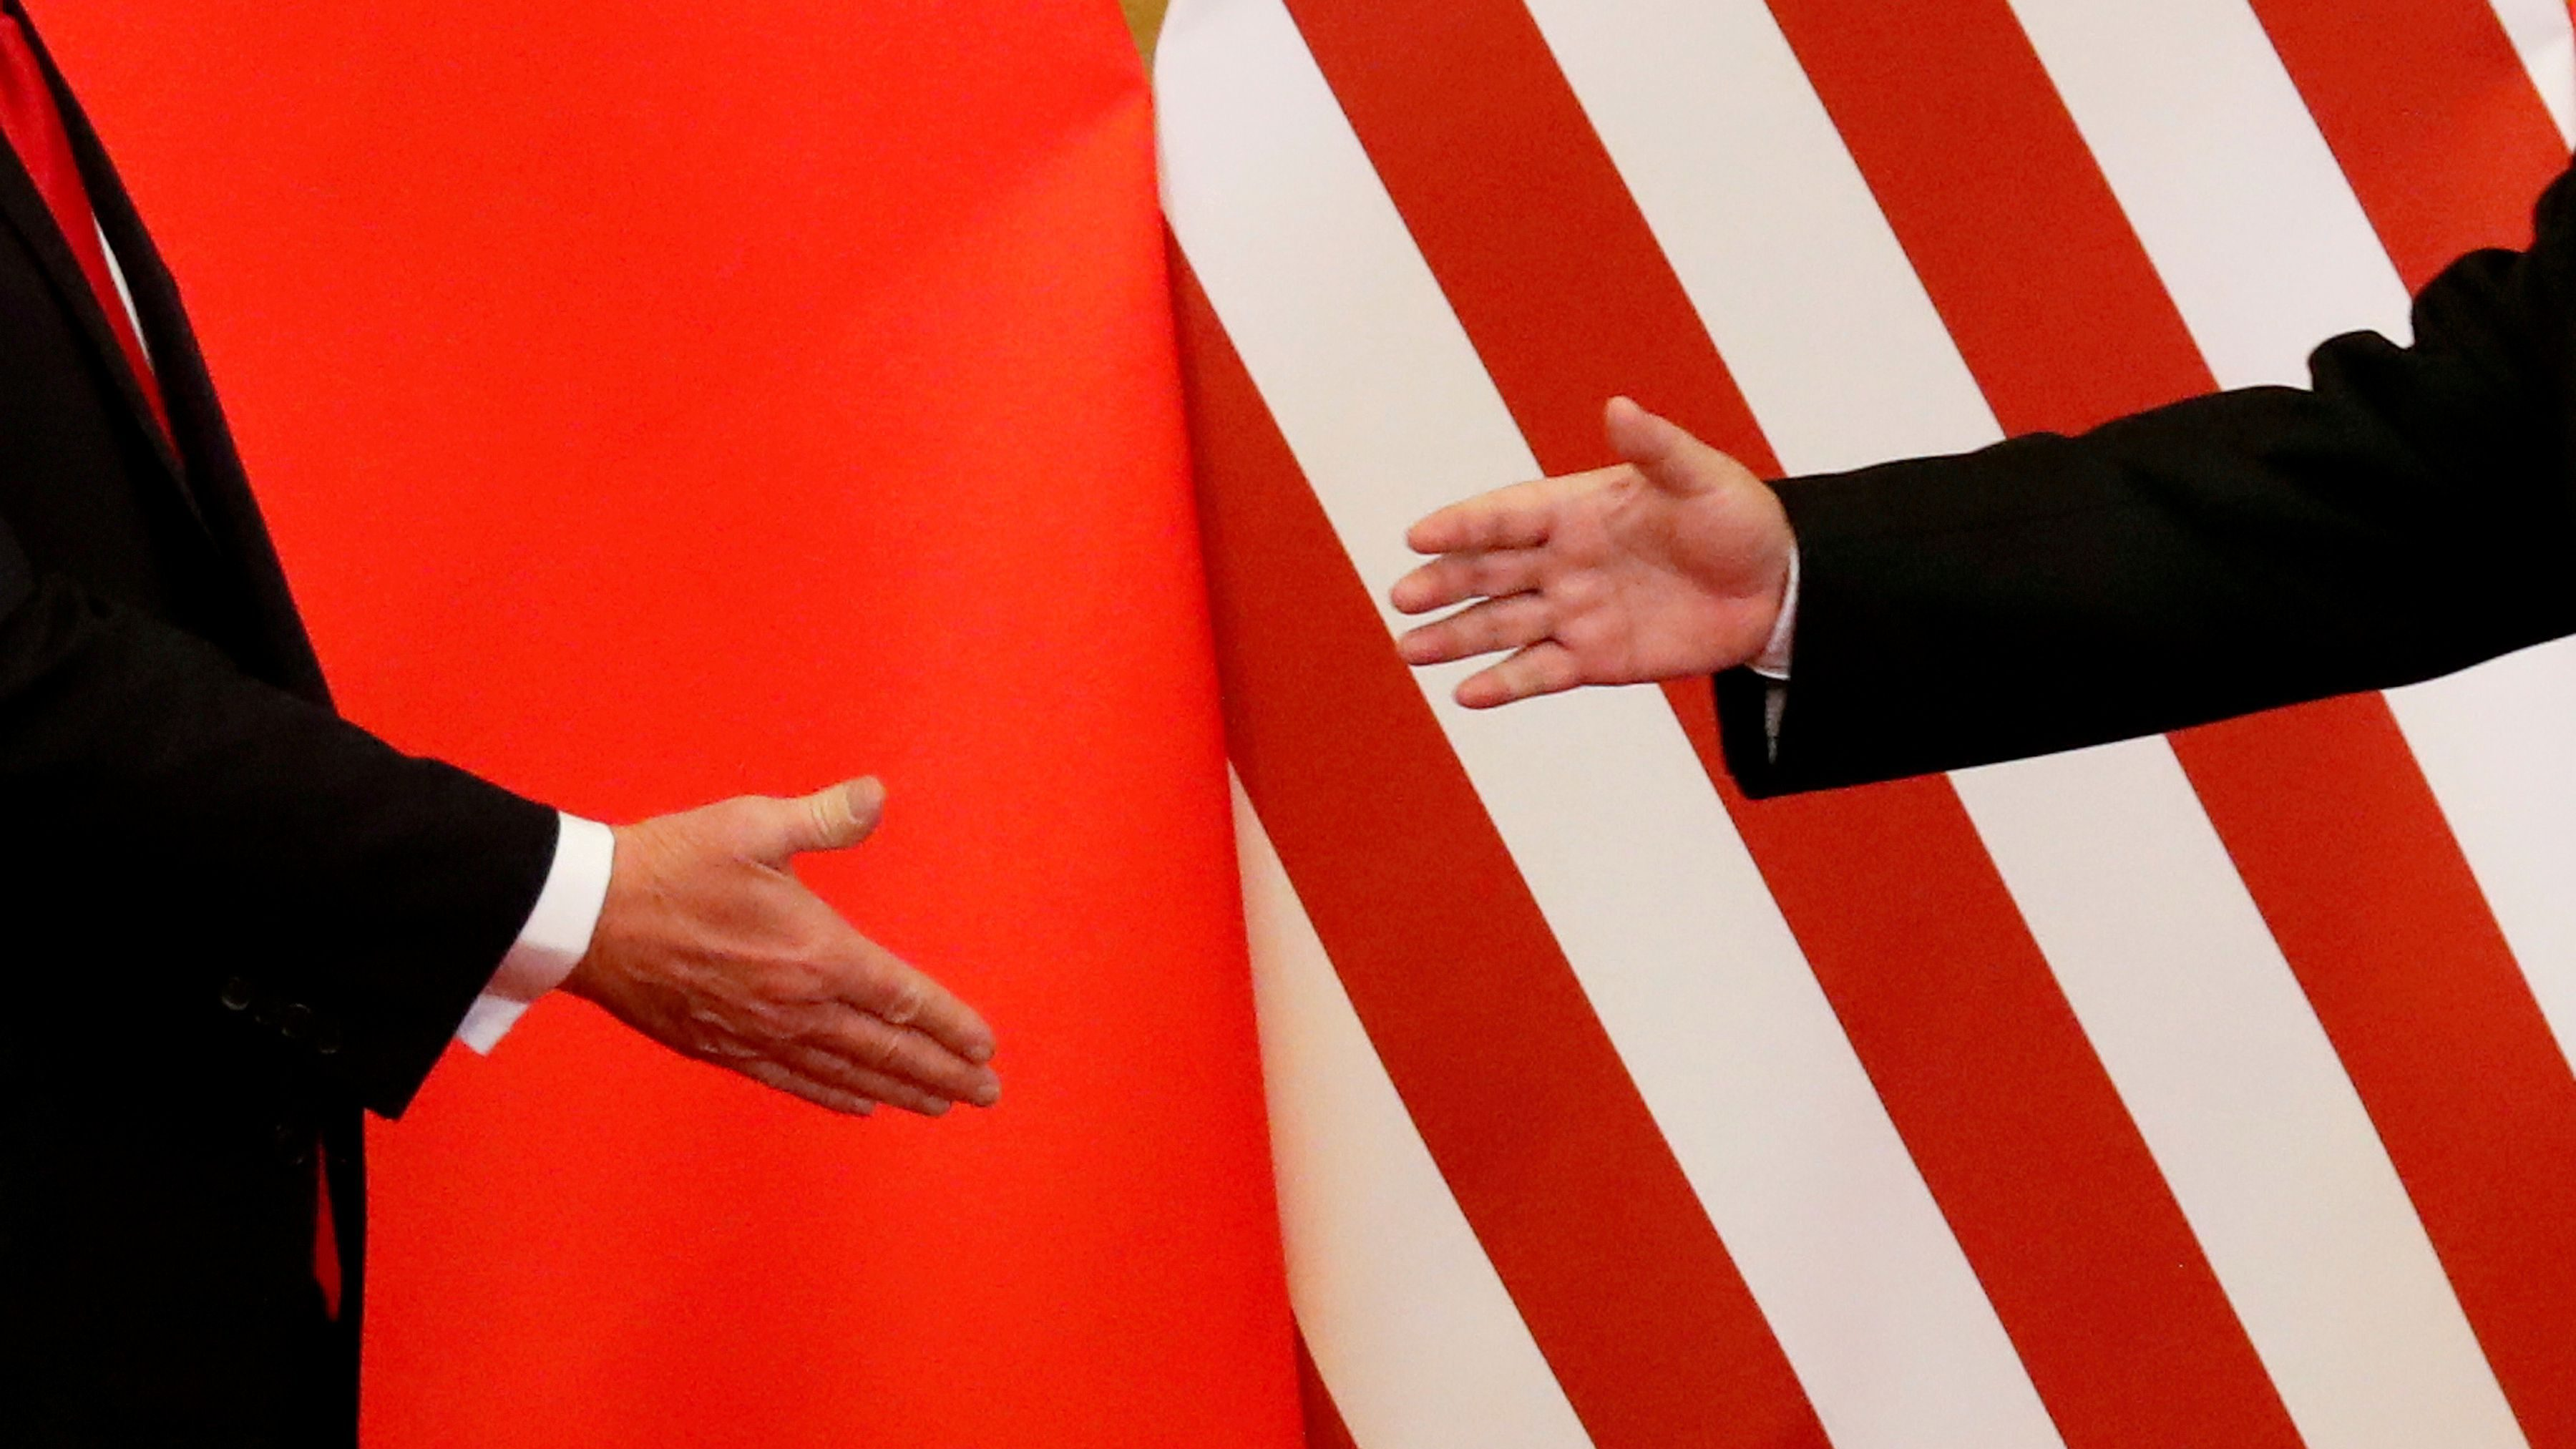 U.S. President Donald Trump and China's President Xi Jinping shake hands after making joint statements at the Great Hall of the People in Beijing, China, November 9, 2017.